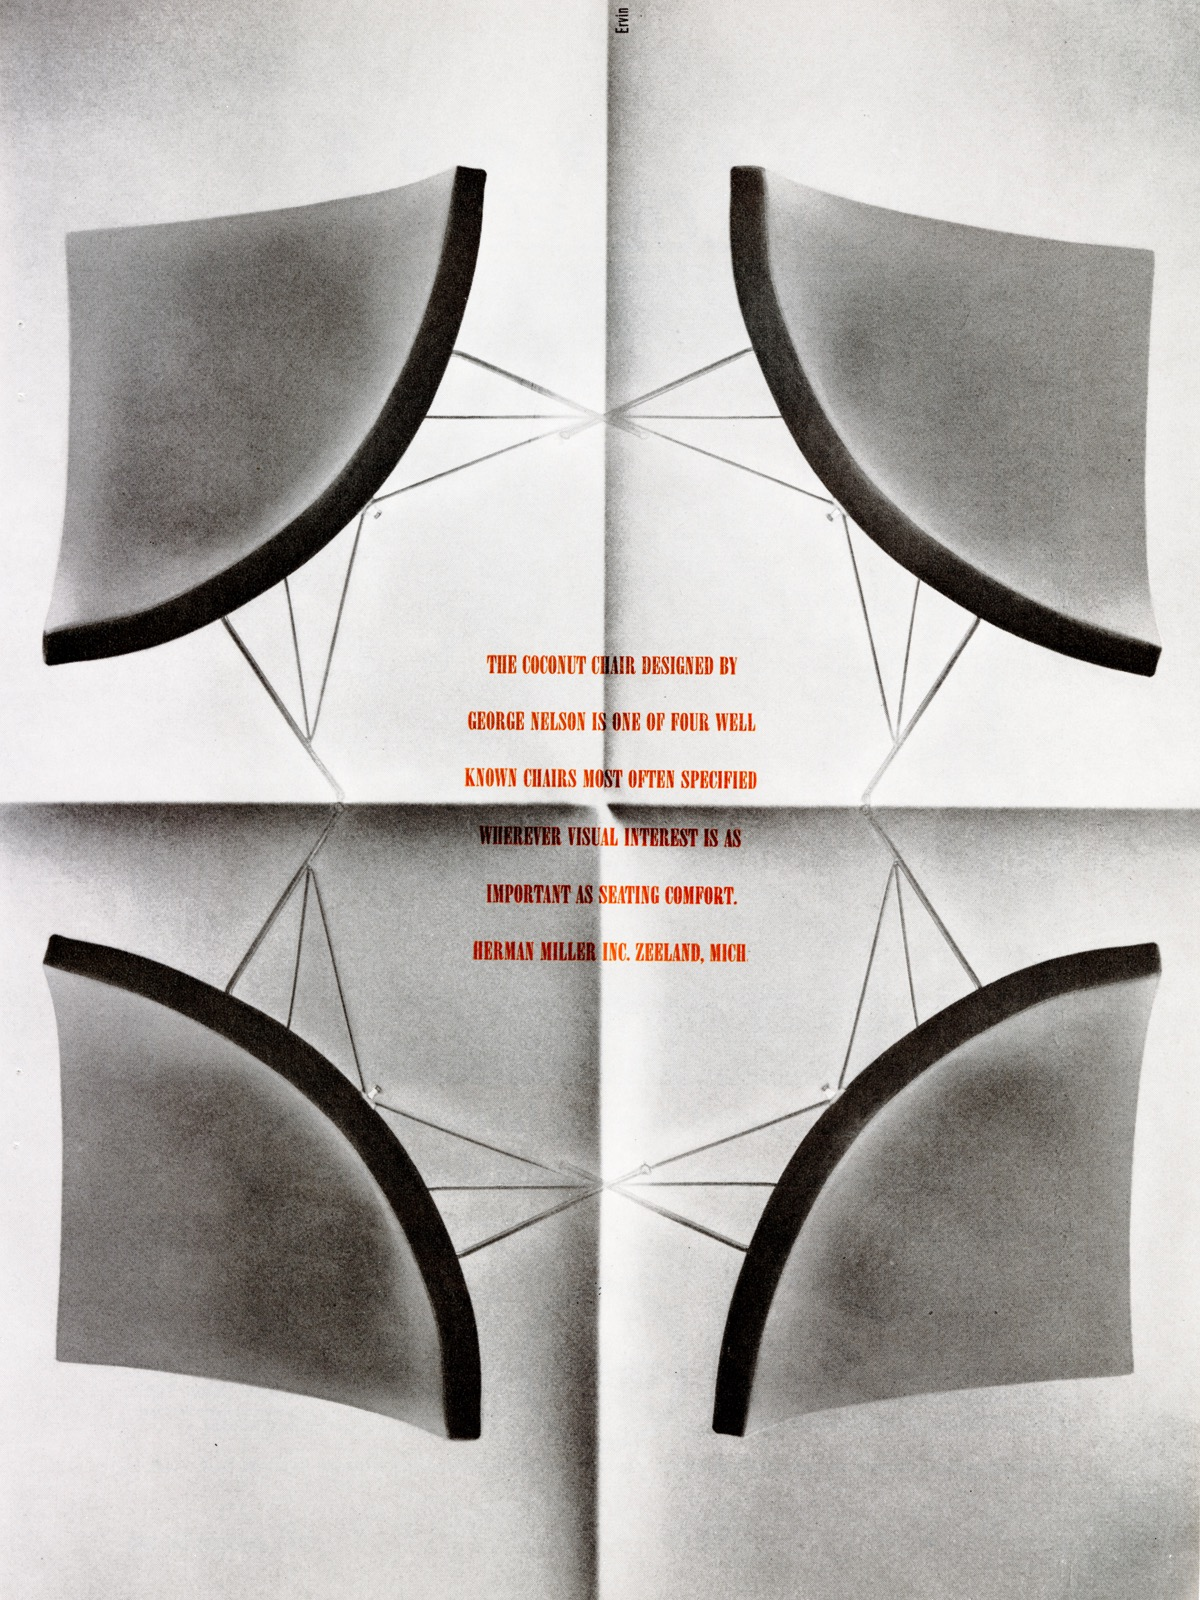 A vintage advertisement for the Nelson Coconut Lounge Chair featuring four chairs arranged in a kaleidoscope pattern around text that highlights the visual interest and comfort of the design.